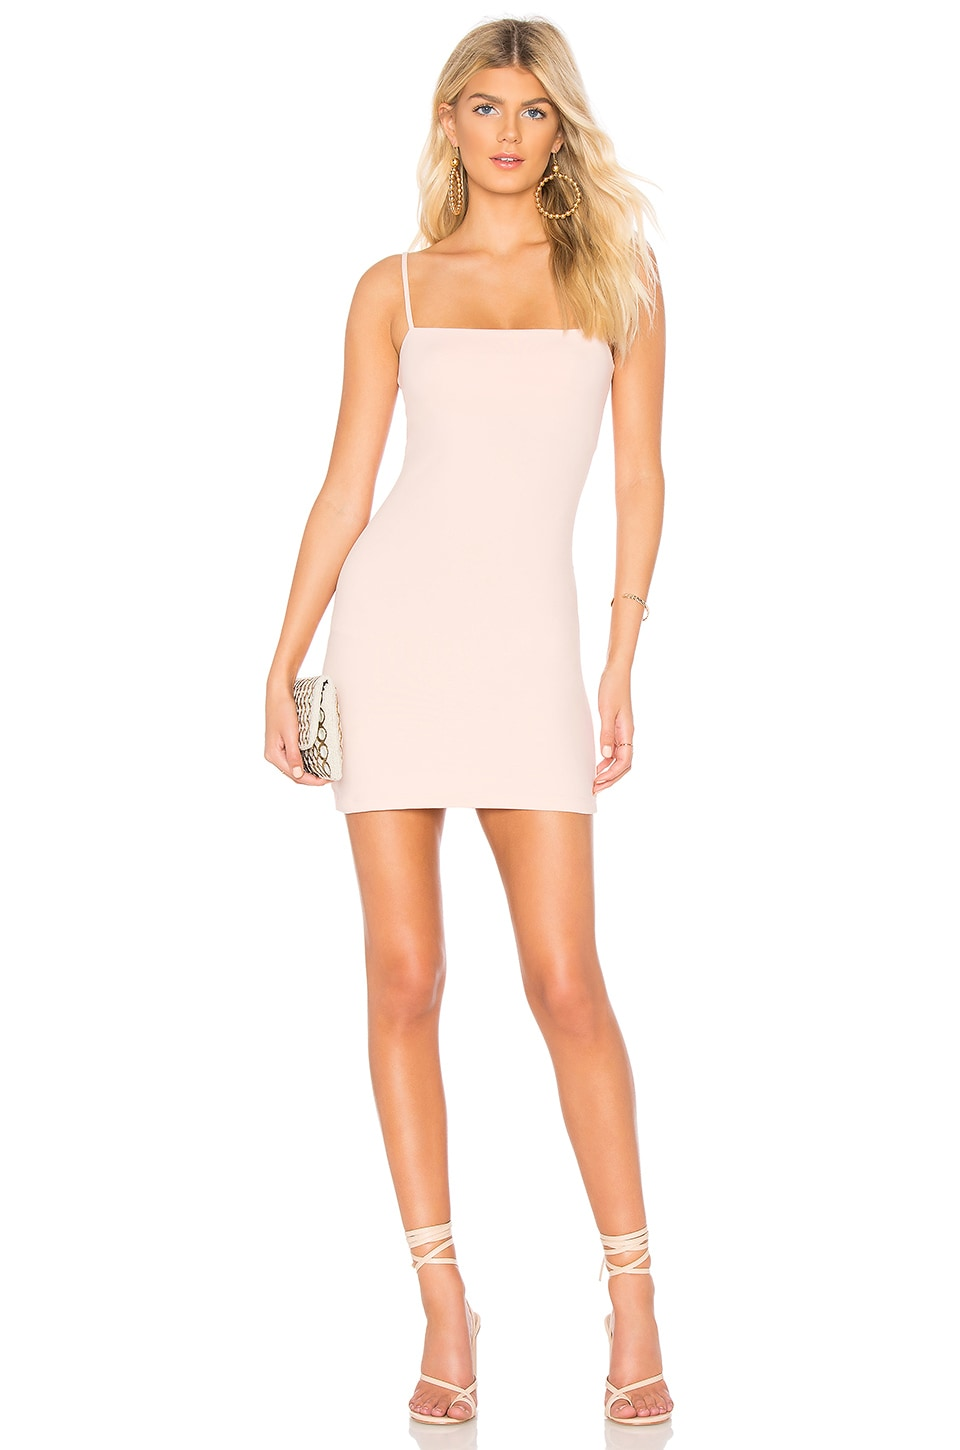 Susana Monaco Thin Strap Mini Dress in Pink Sand